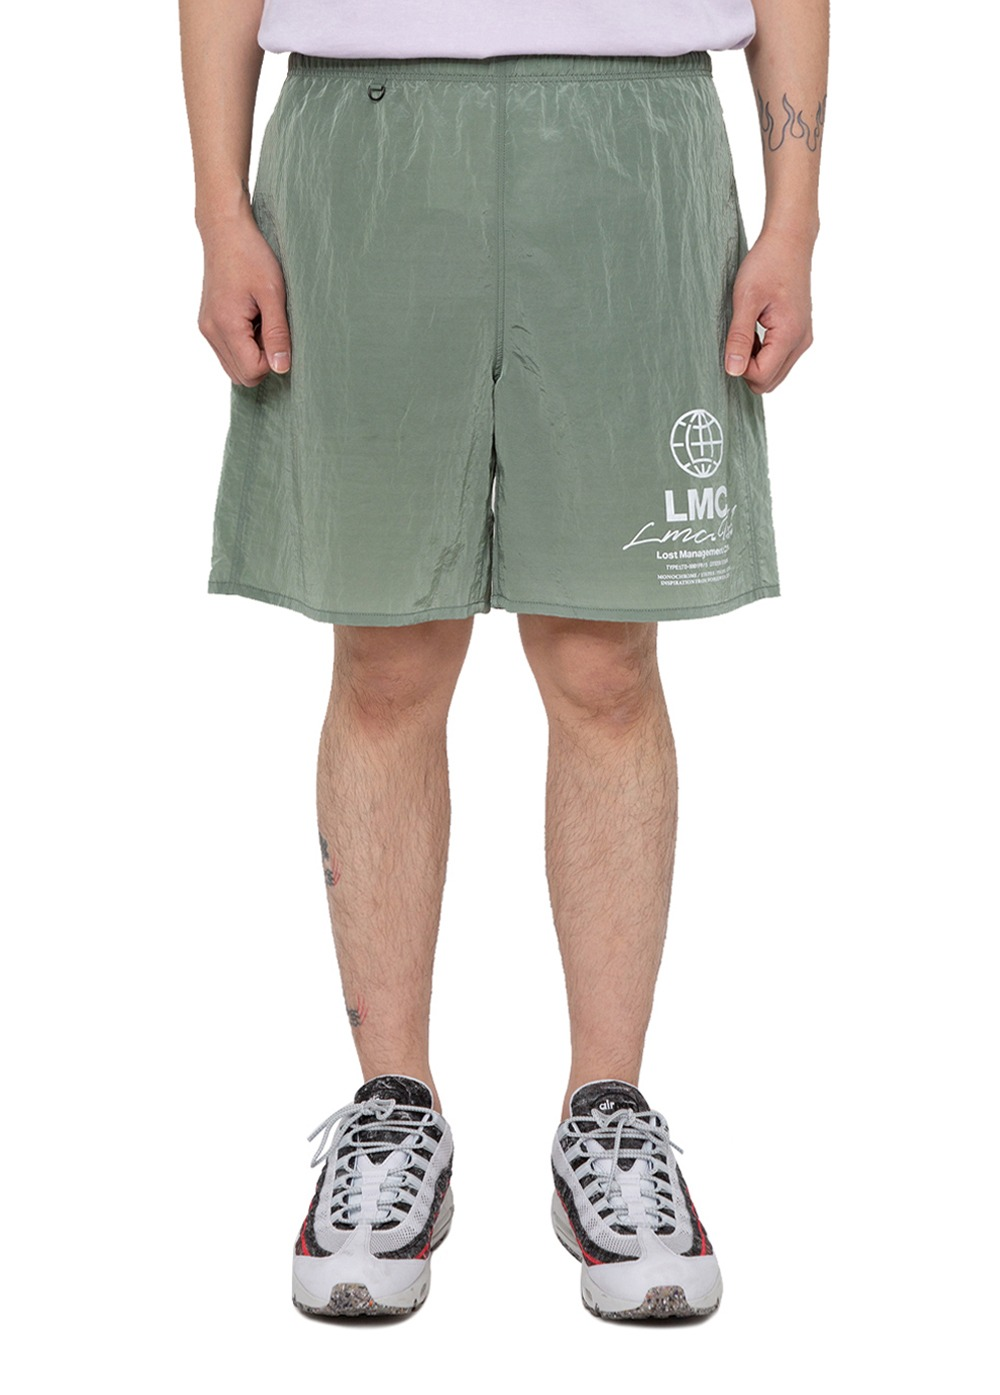 LMC TED GLOSSY WATER SHORTS olive green